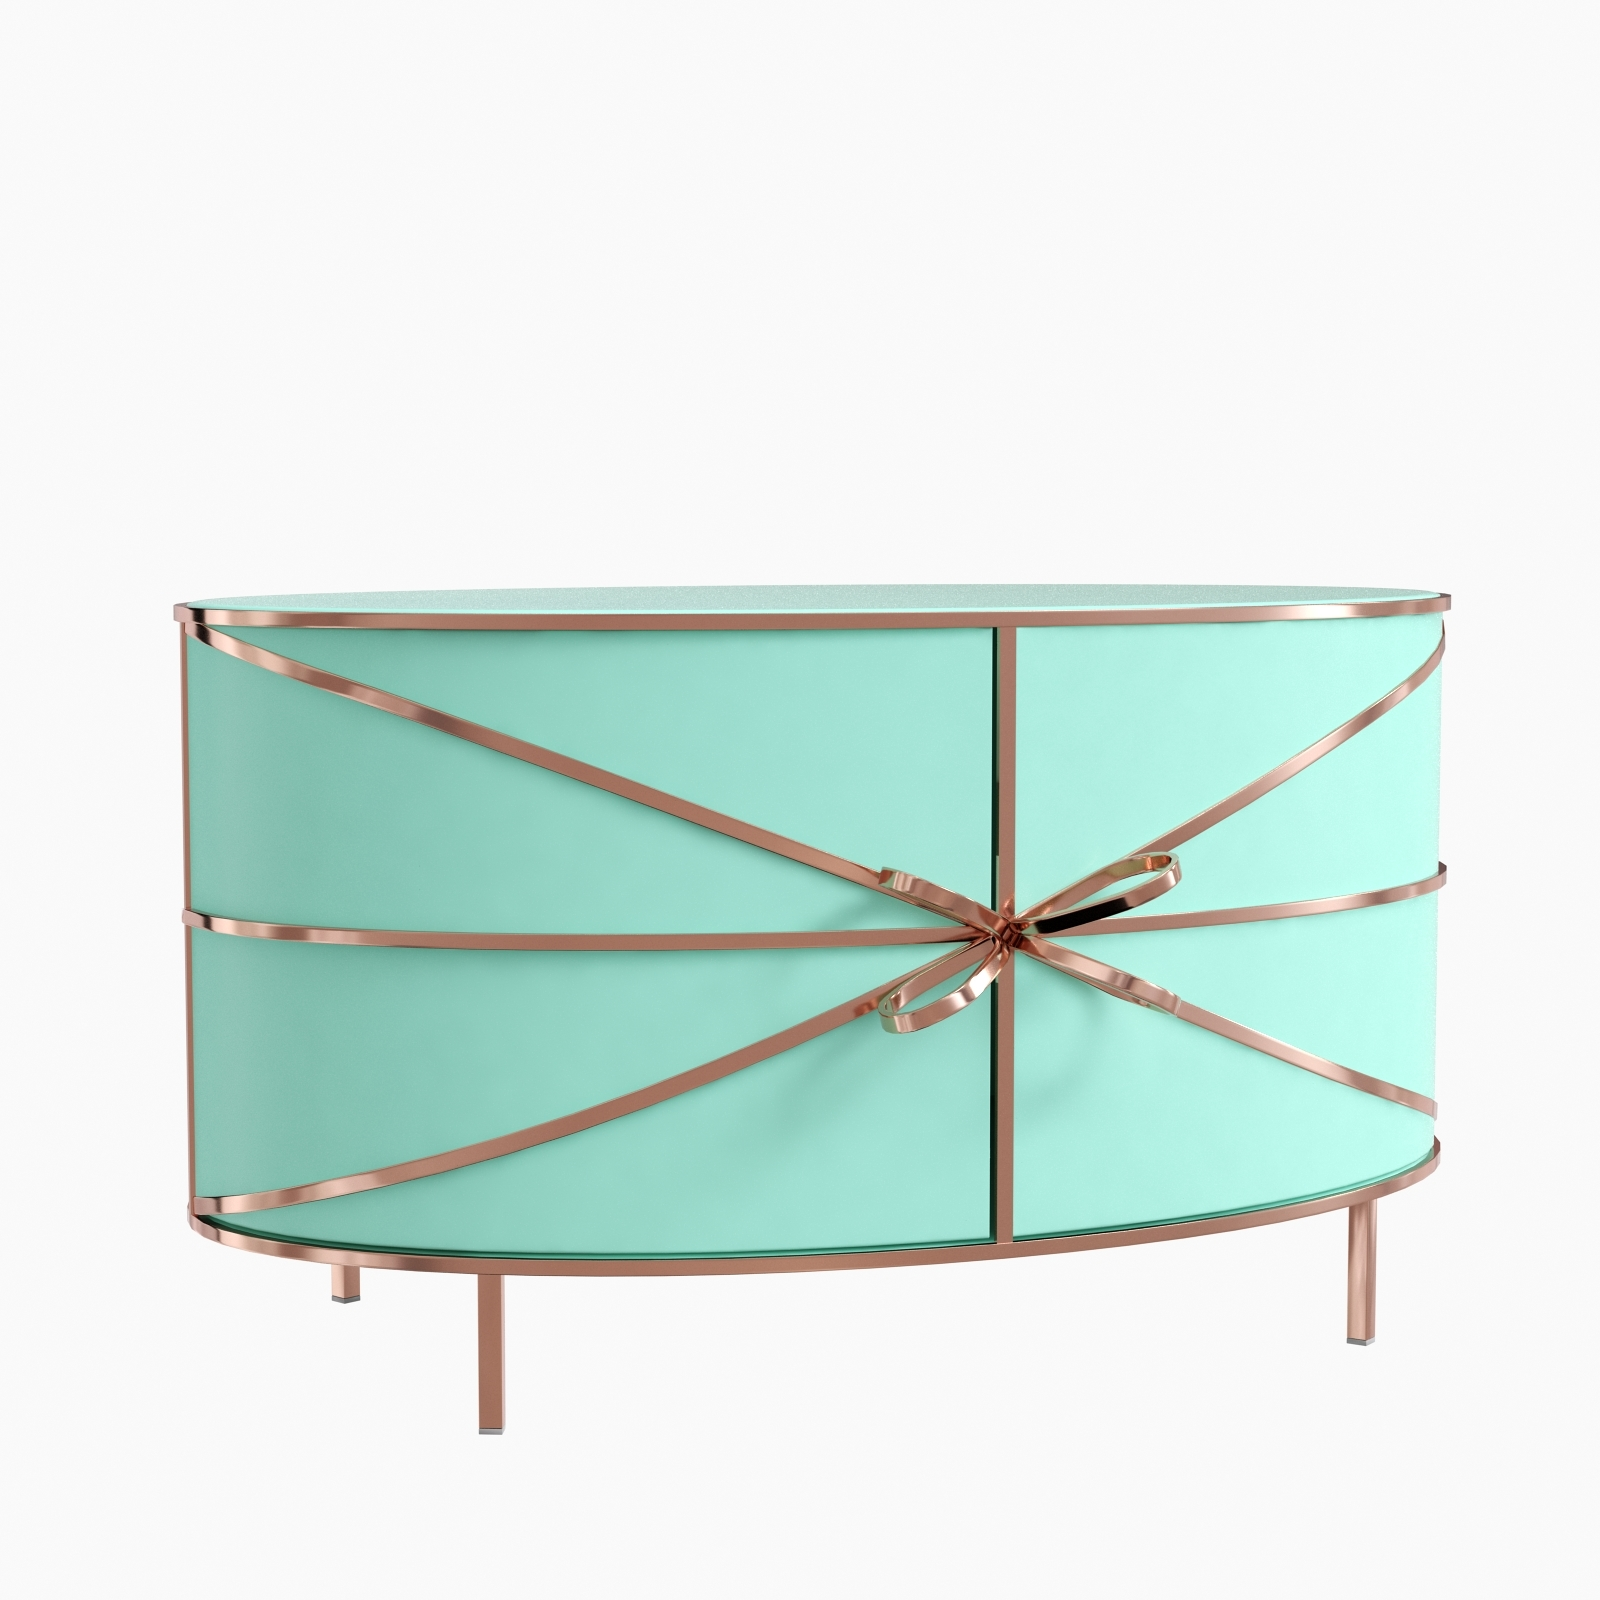 The Most Expensive Sideboards That Will Bring Uniqueness To Your Home expensive sideboards The Most Expensive Sideboards That Will Bring Uniqueness To Your Home The Most ExpensiveSideboards That Will Bring Uniqueness To Your Home 6